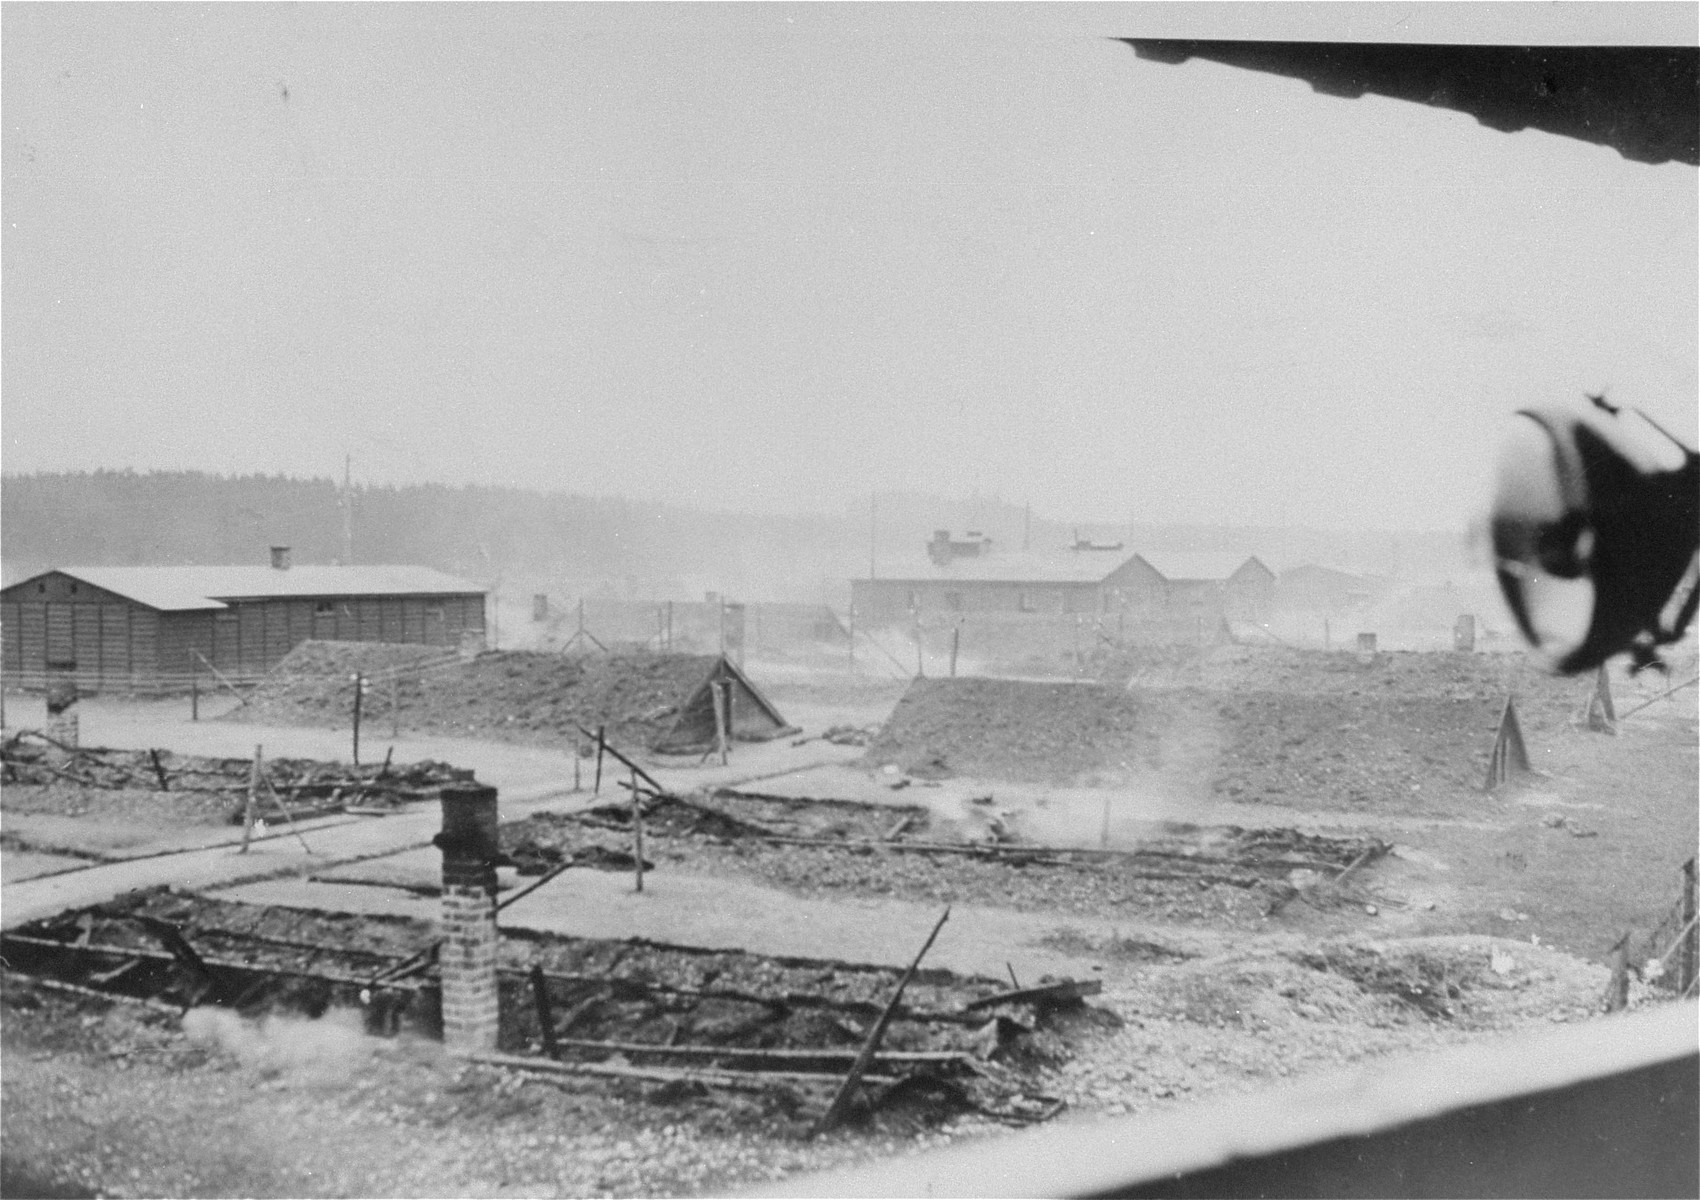 View of the Kaufering IV concentration camp, a sub-camp of Dachau, taken on the day of liberation.